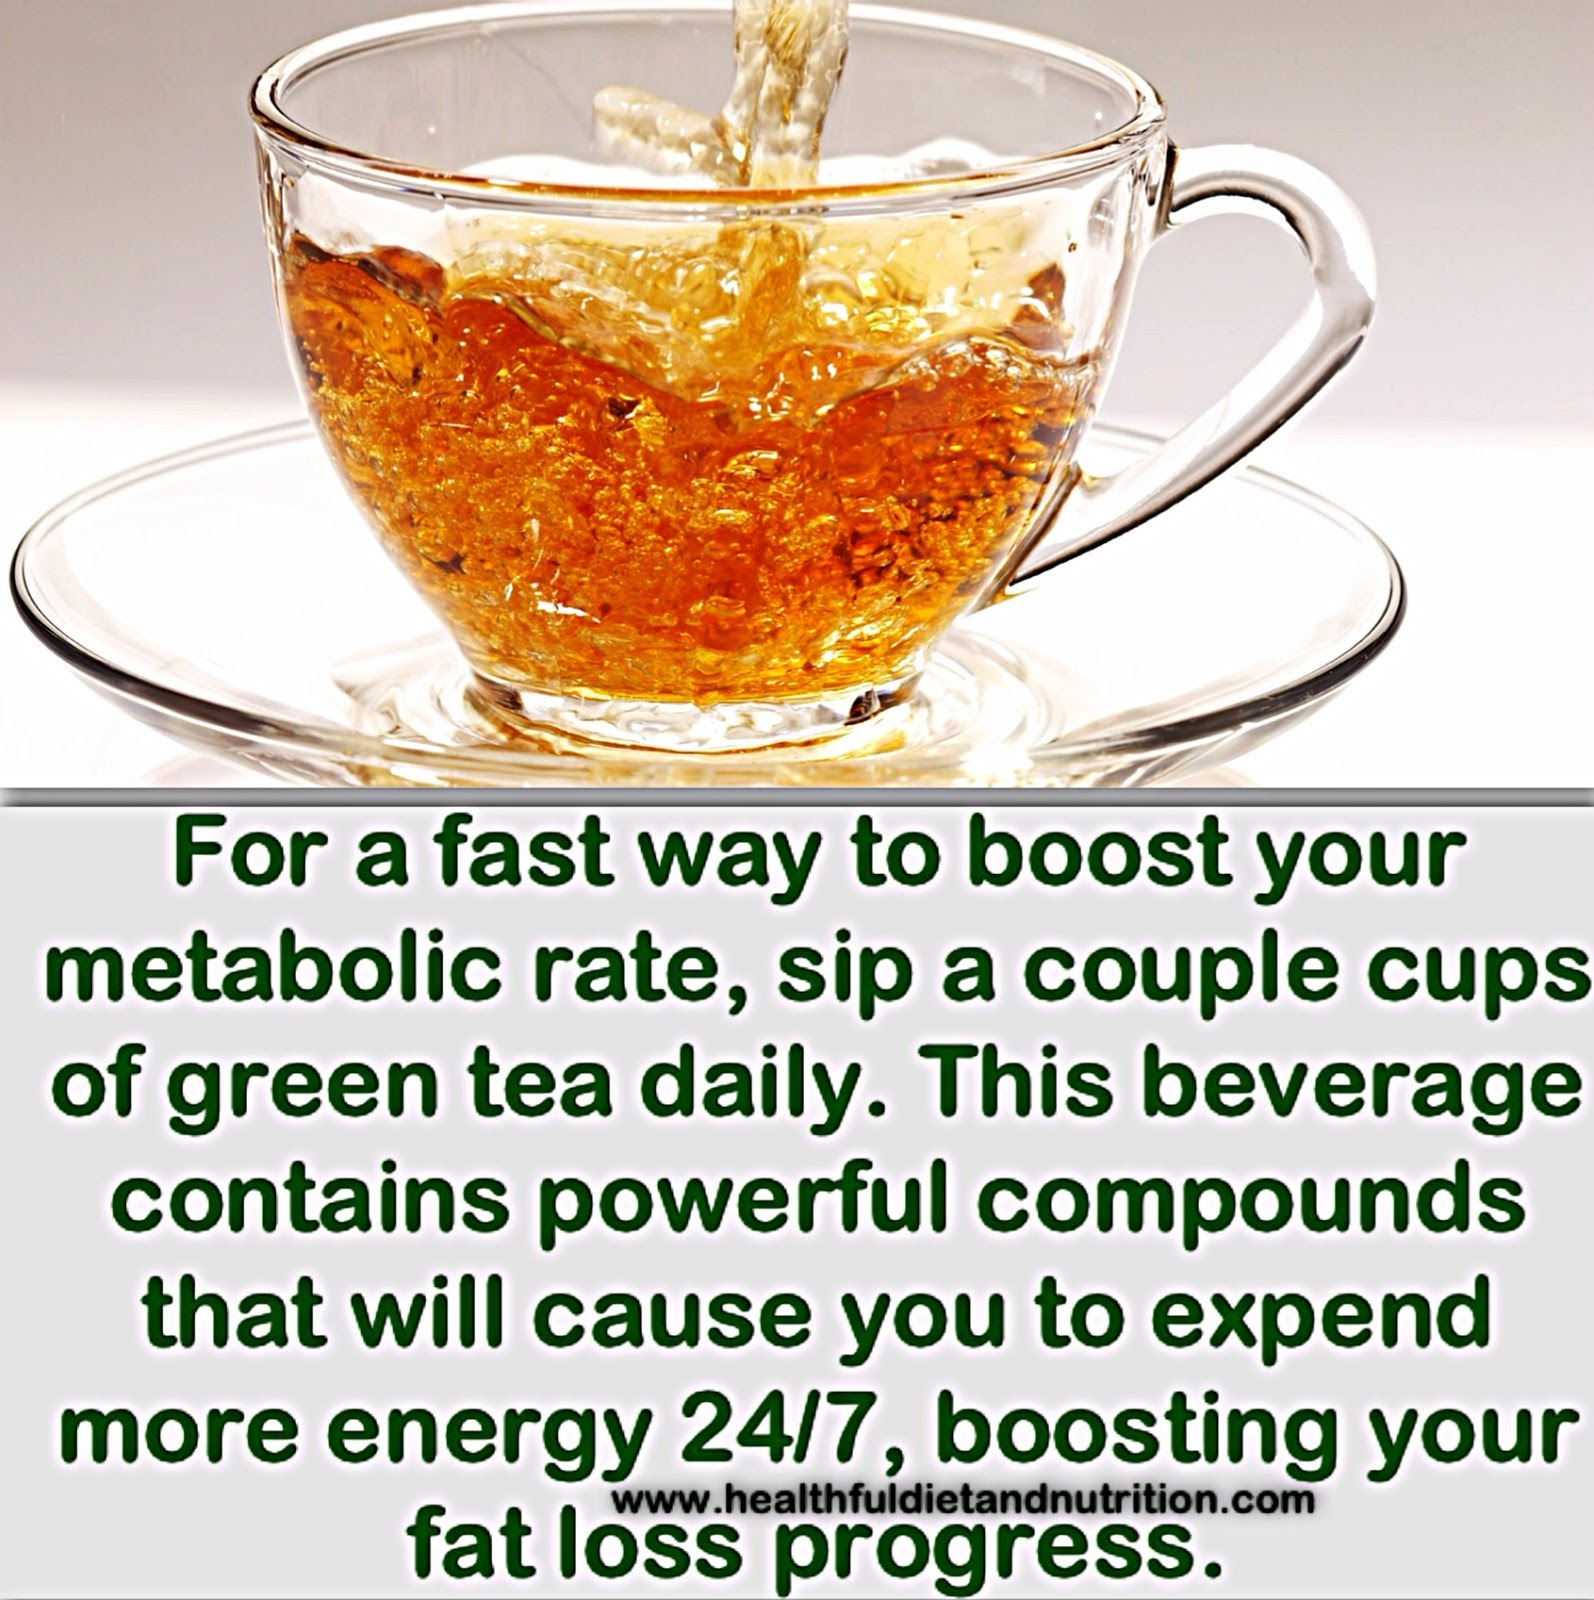 Sip a couple cups of Green Tea Daily